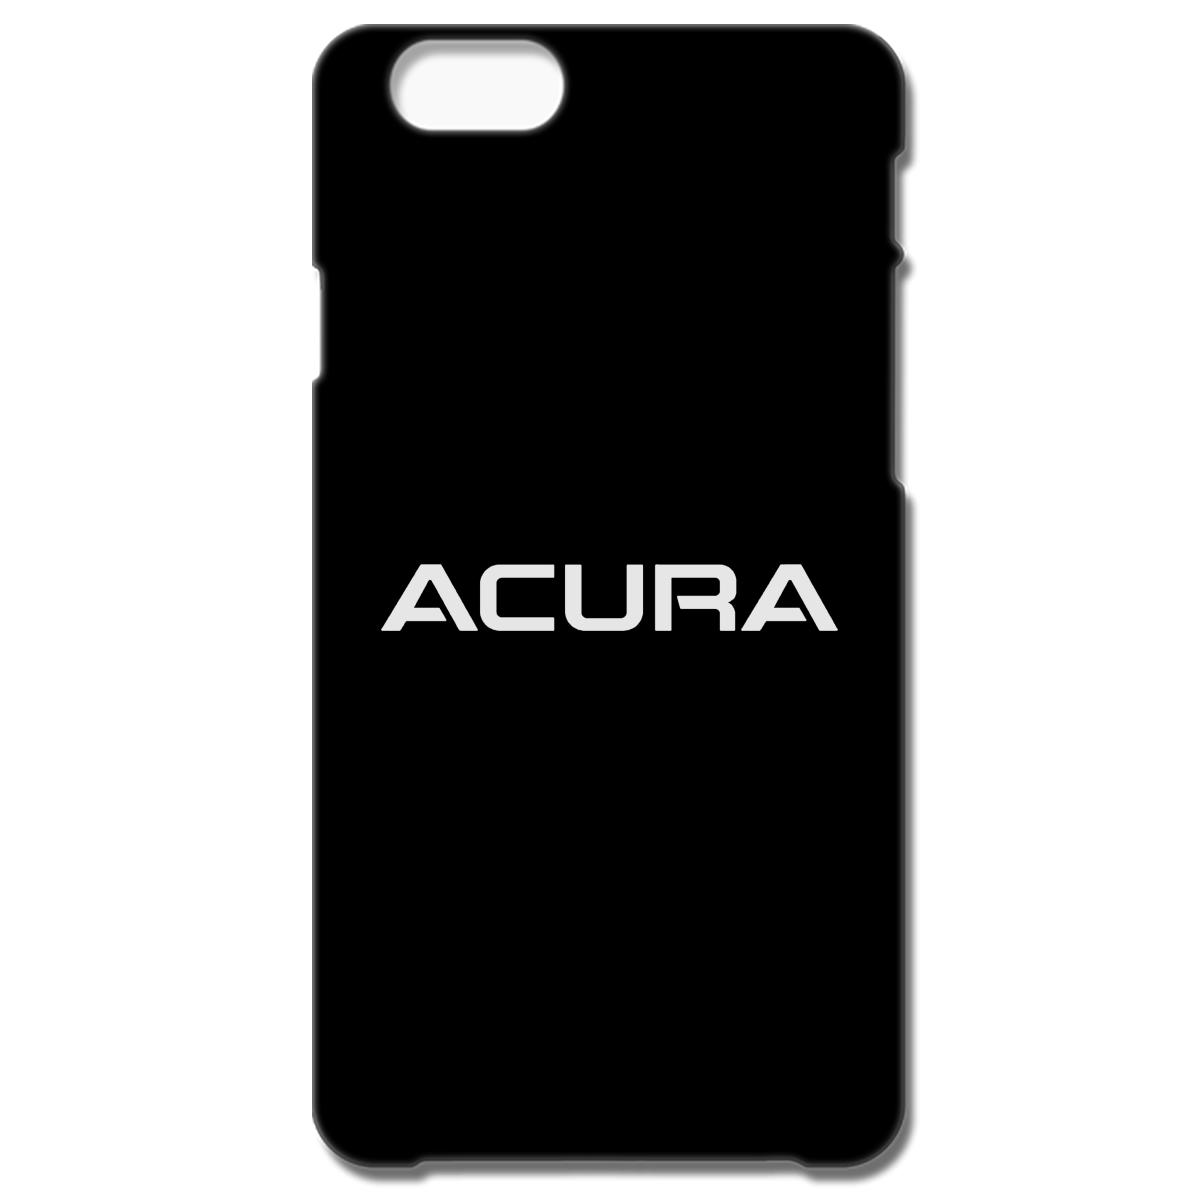 Acura Logo IPhone S Plus Case Customoncom - Acura phone case